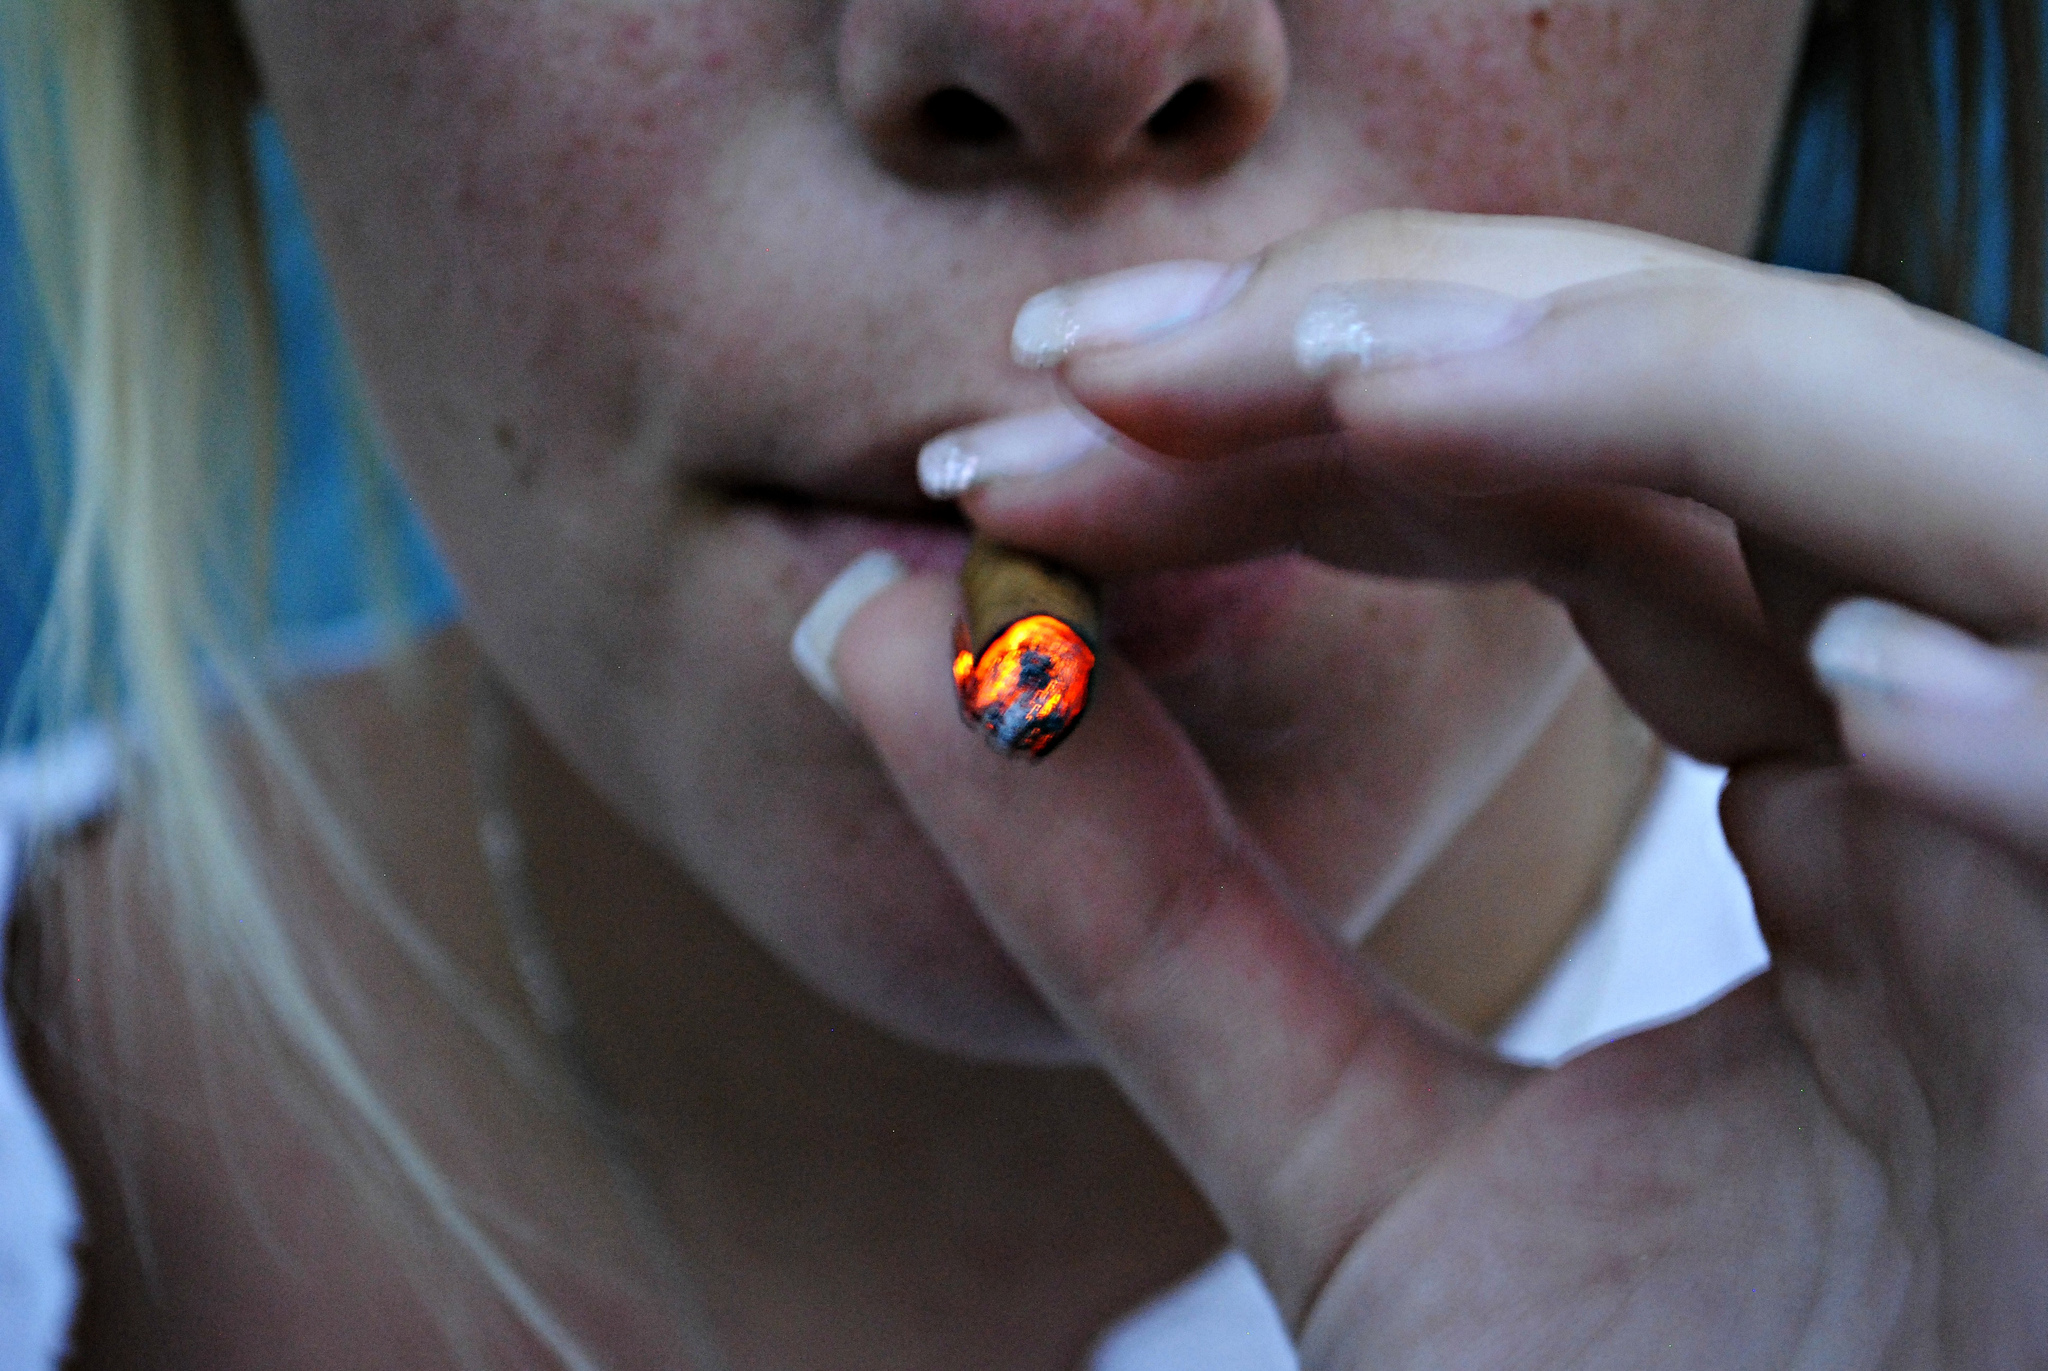 Girl smoking weed blunt